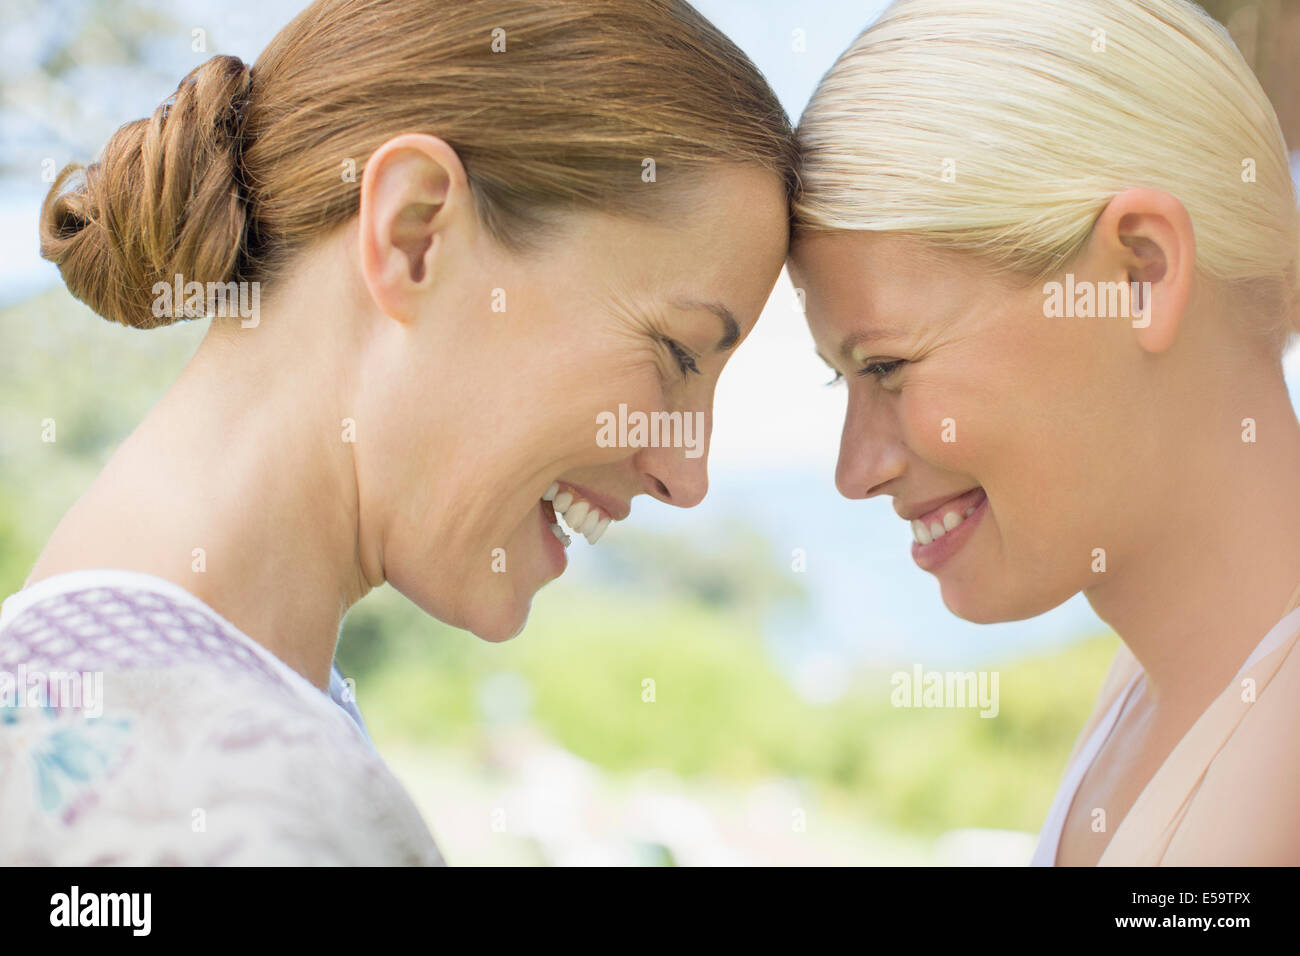 Women laughing together indoors - Stock Image